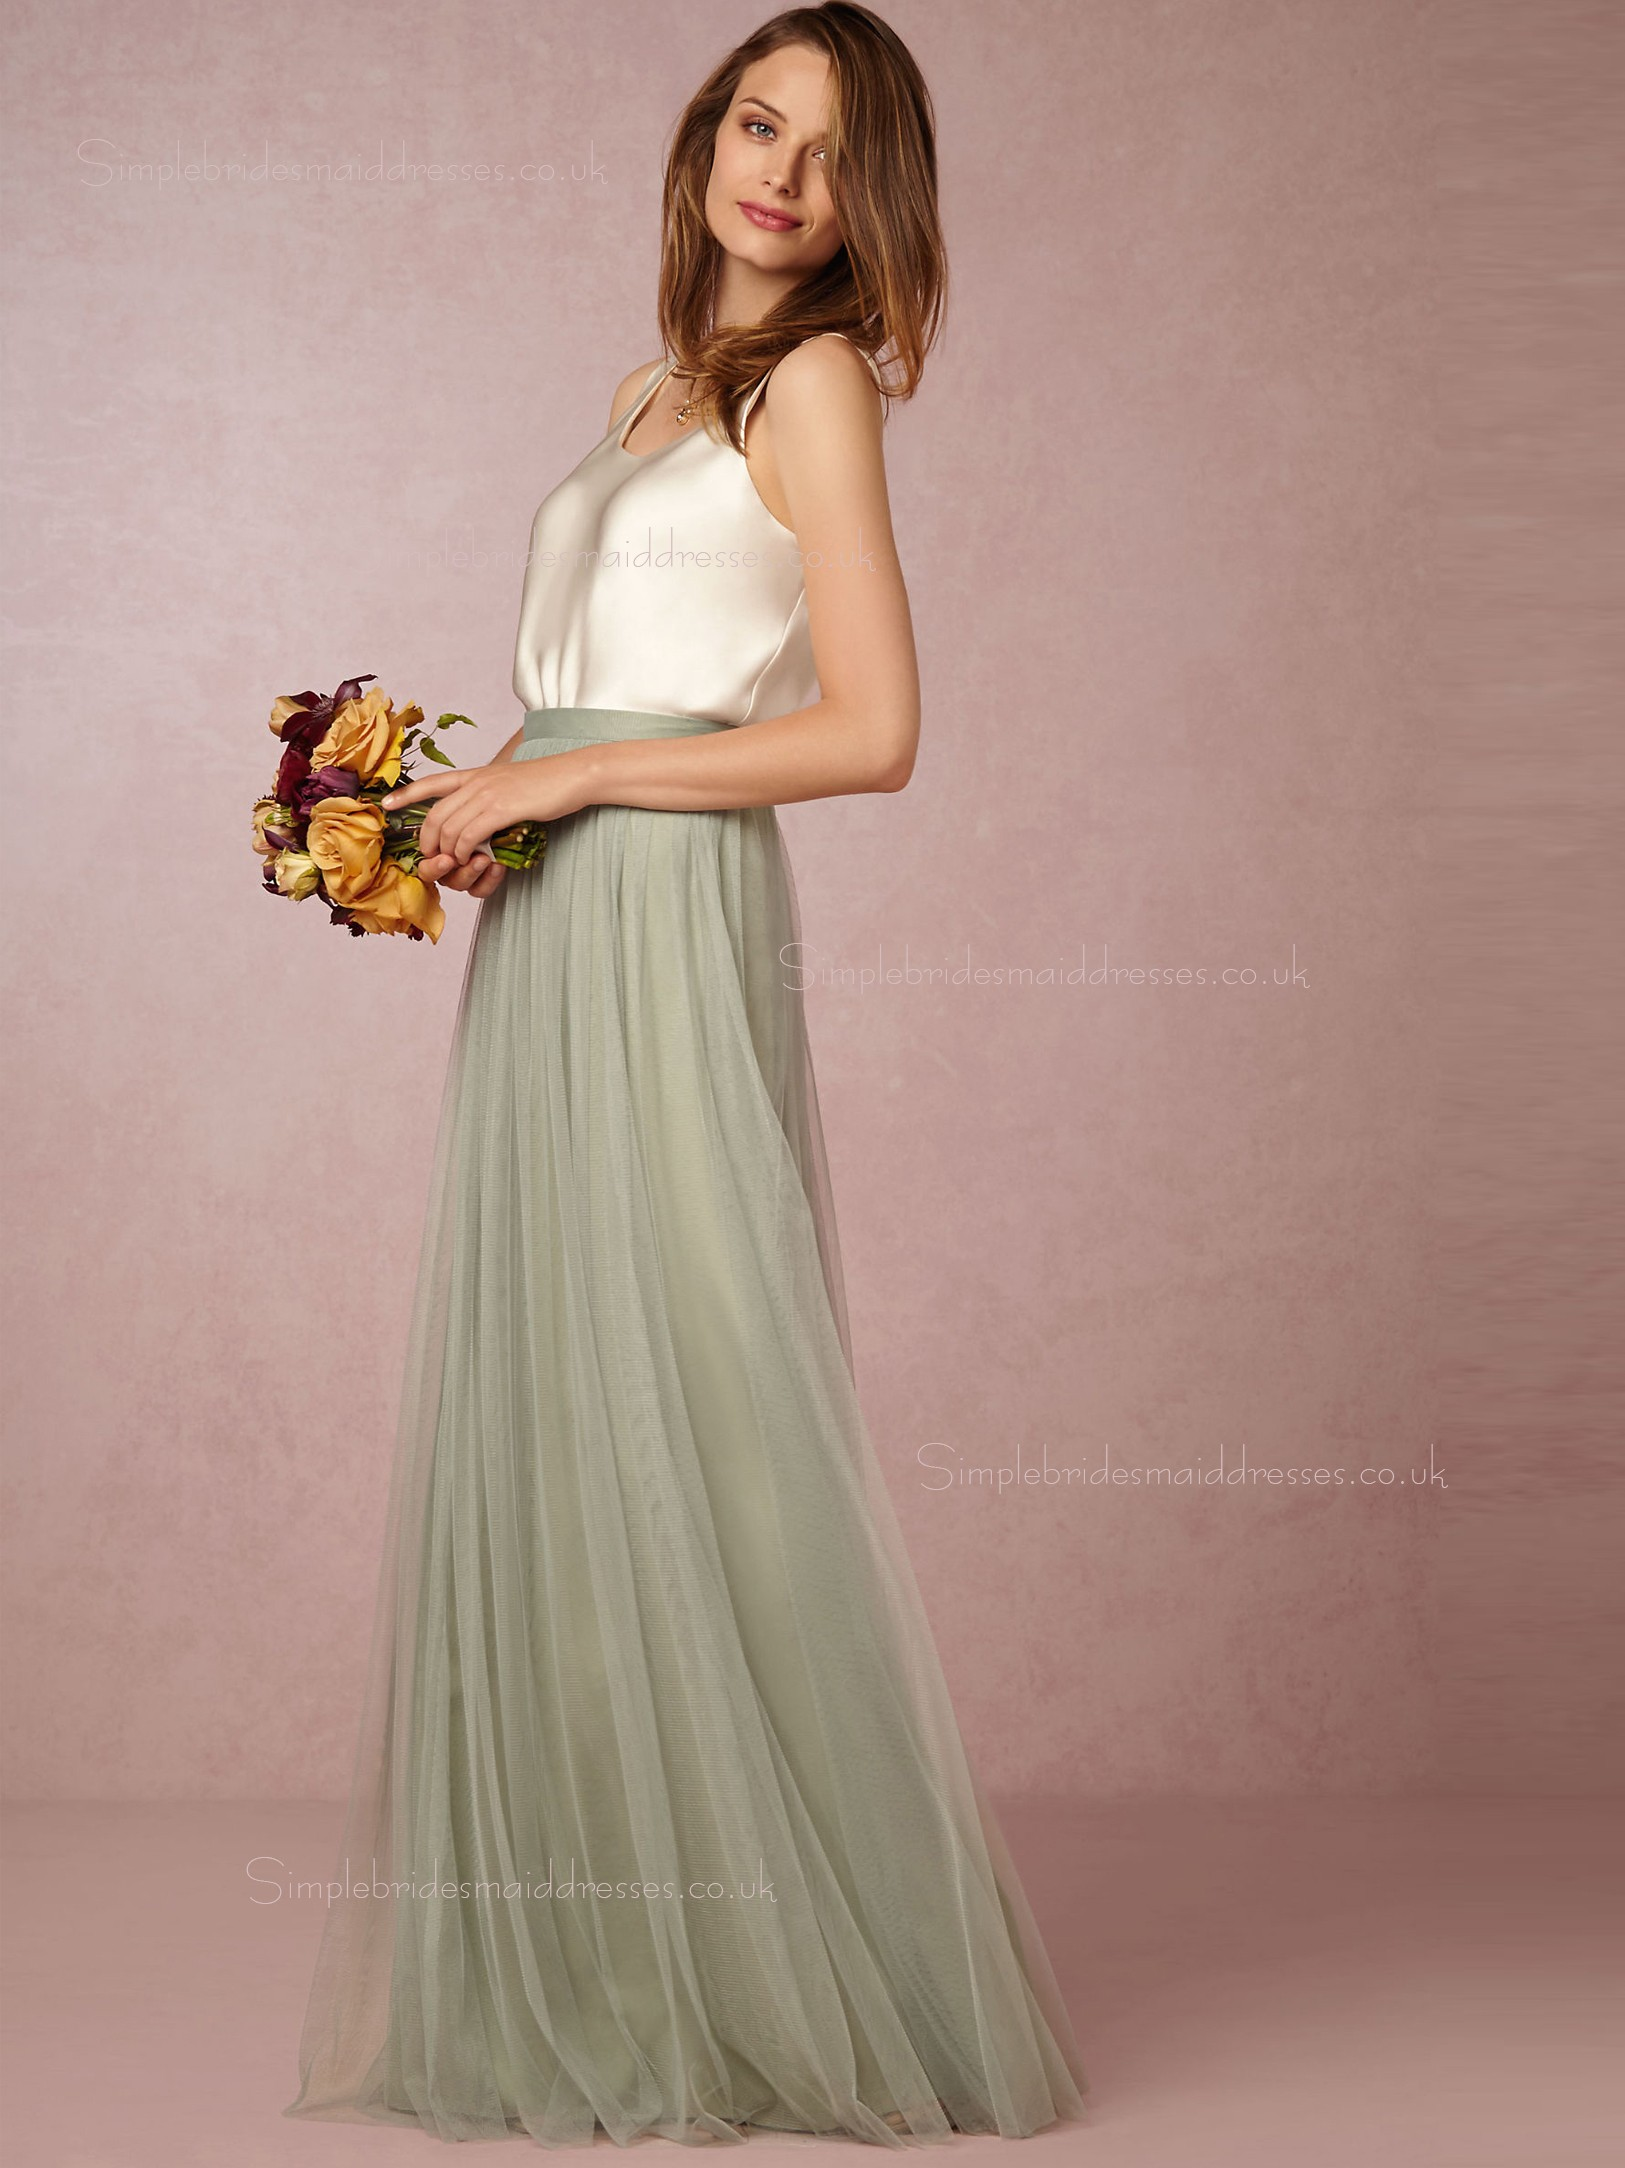 Green bridesmaid dresses uk sage green bridesmaid dresses popular a line bateau green natural backless bridesmaid dresses ombrellifo Gallery